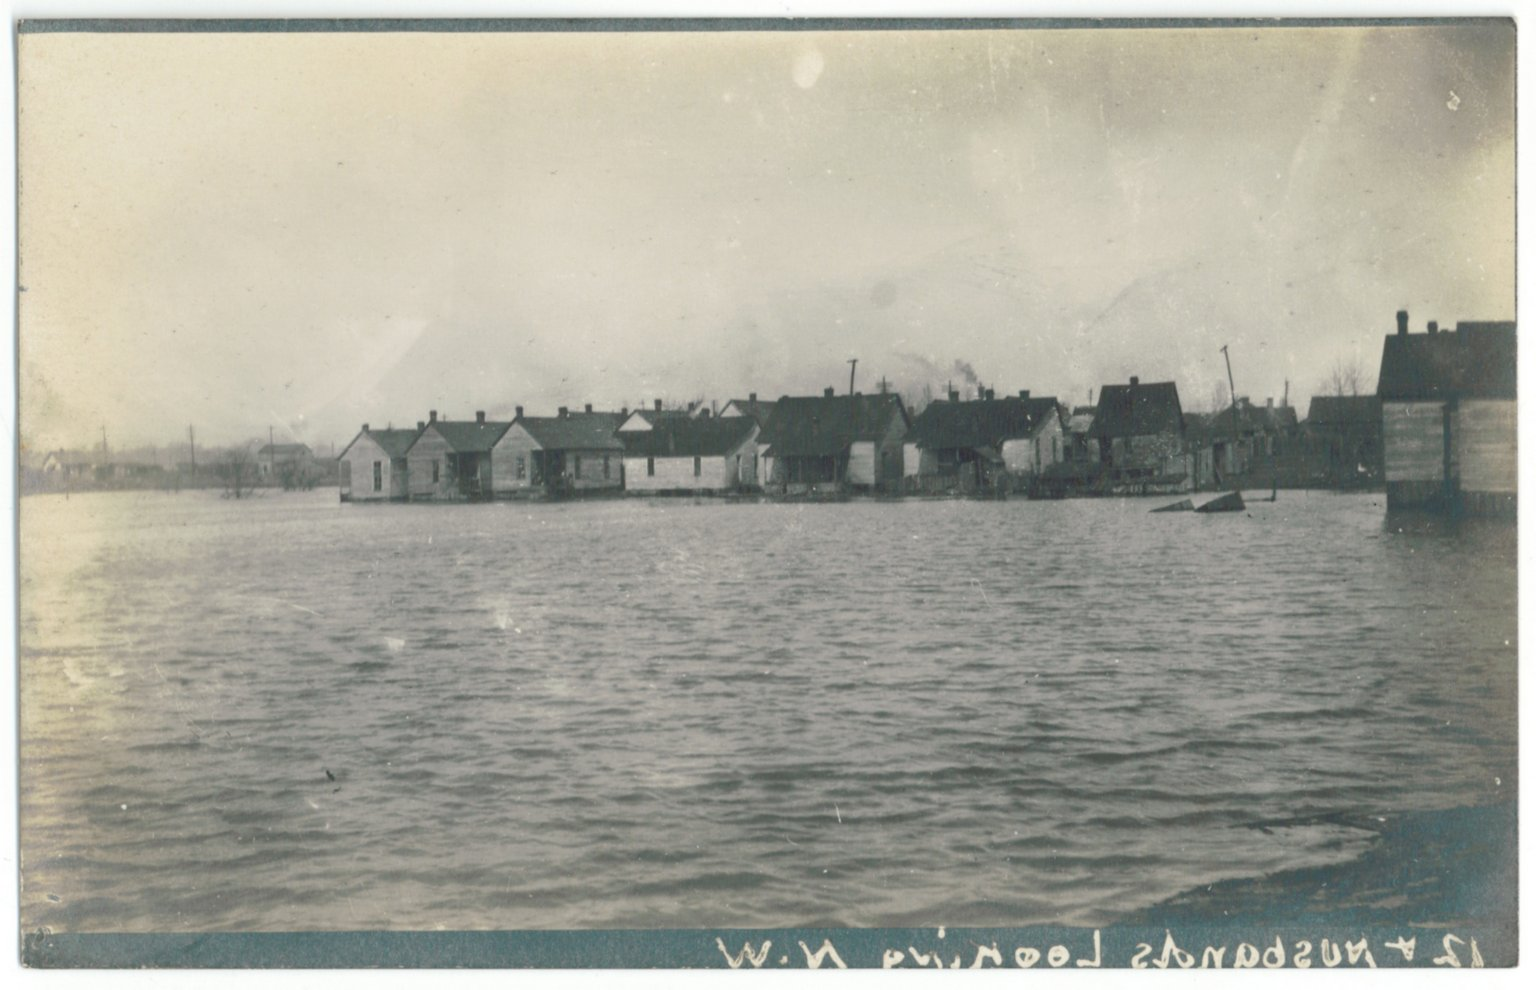 1913 Flood, 12th & Husbands N.W.